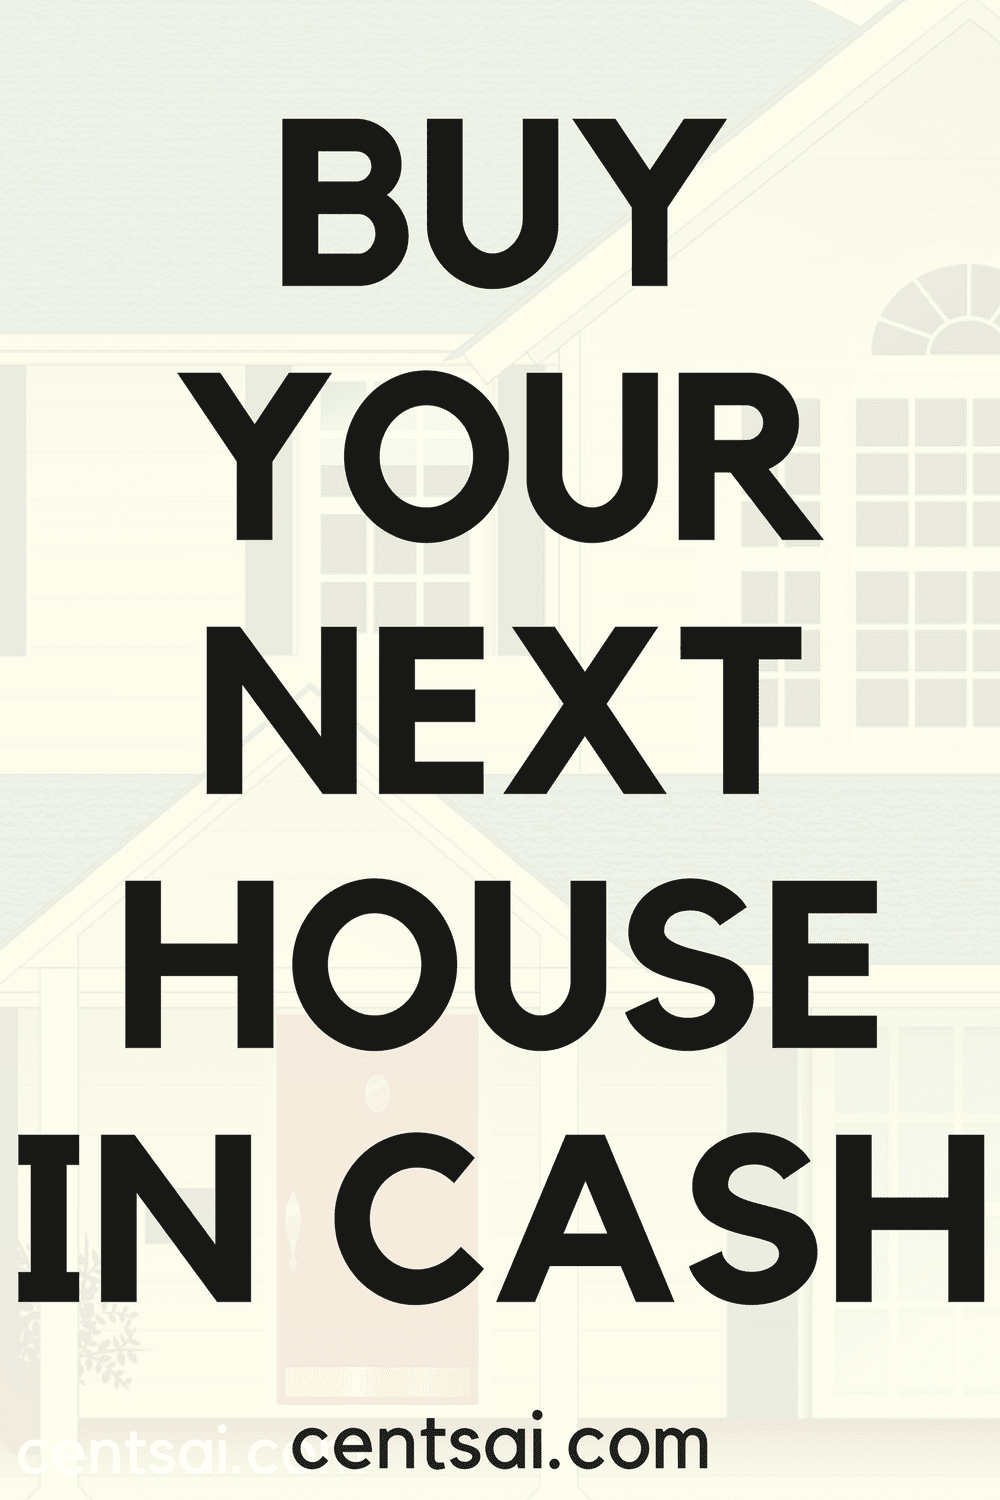 It may seem crazy to pay for a house in cash, but it appears to be a popular option. And there may be method to cash buyers' madness.